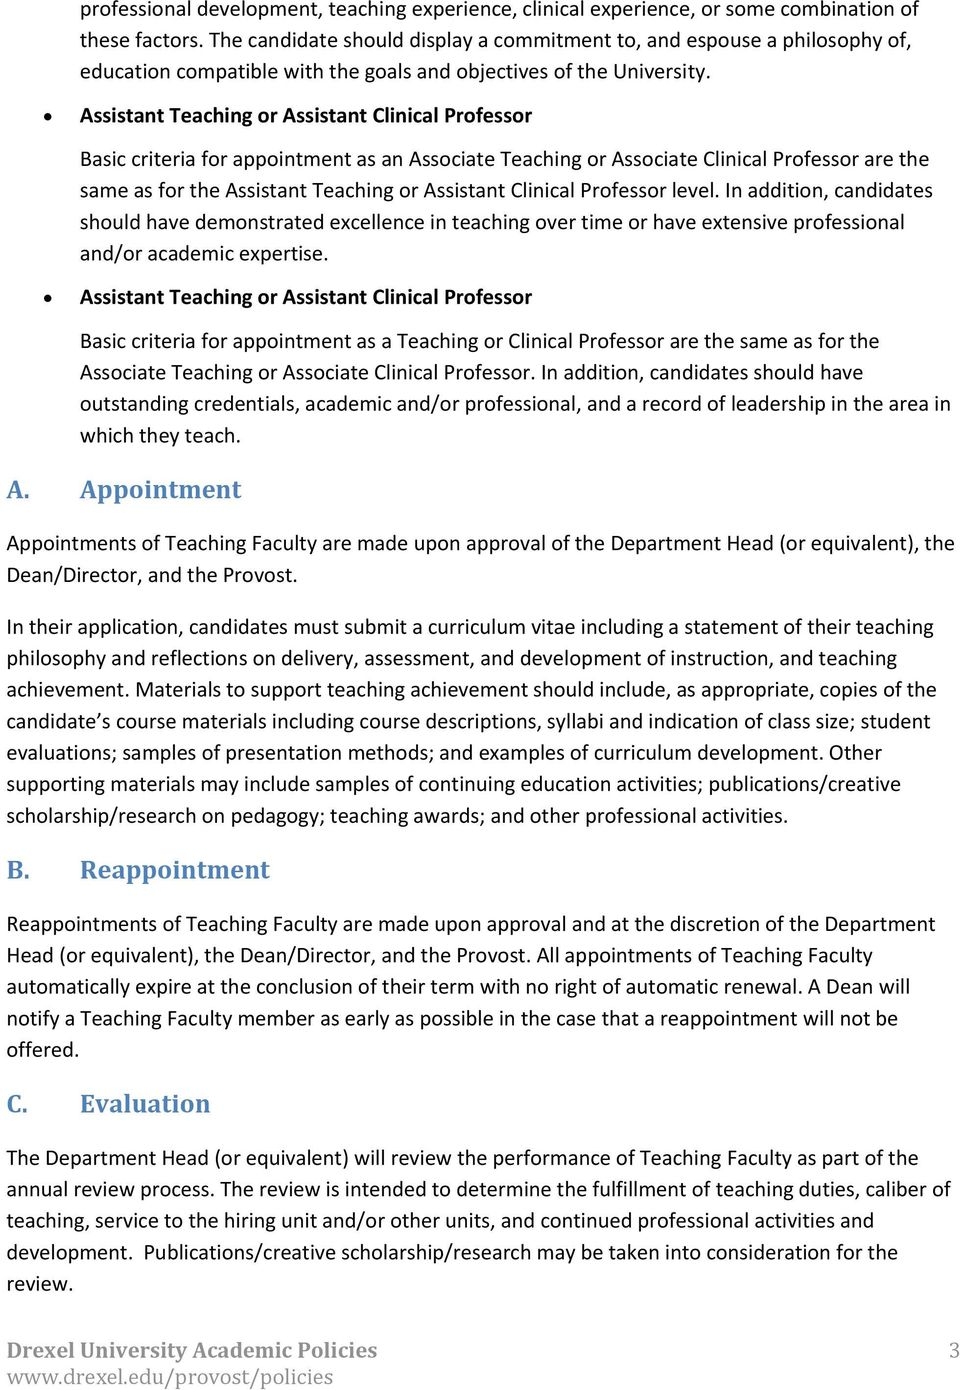 Assistant Teaching or Assistant Clinical Professor Basic criteria for appointment as an Associate Teaching or Associate Clinical Professor are the same as for the Assistant Teaching or Assistant